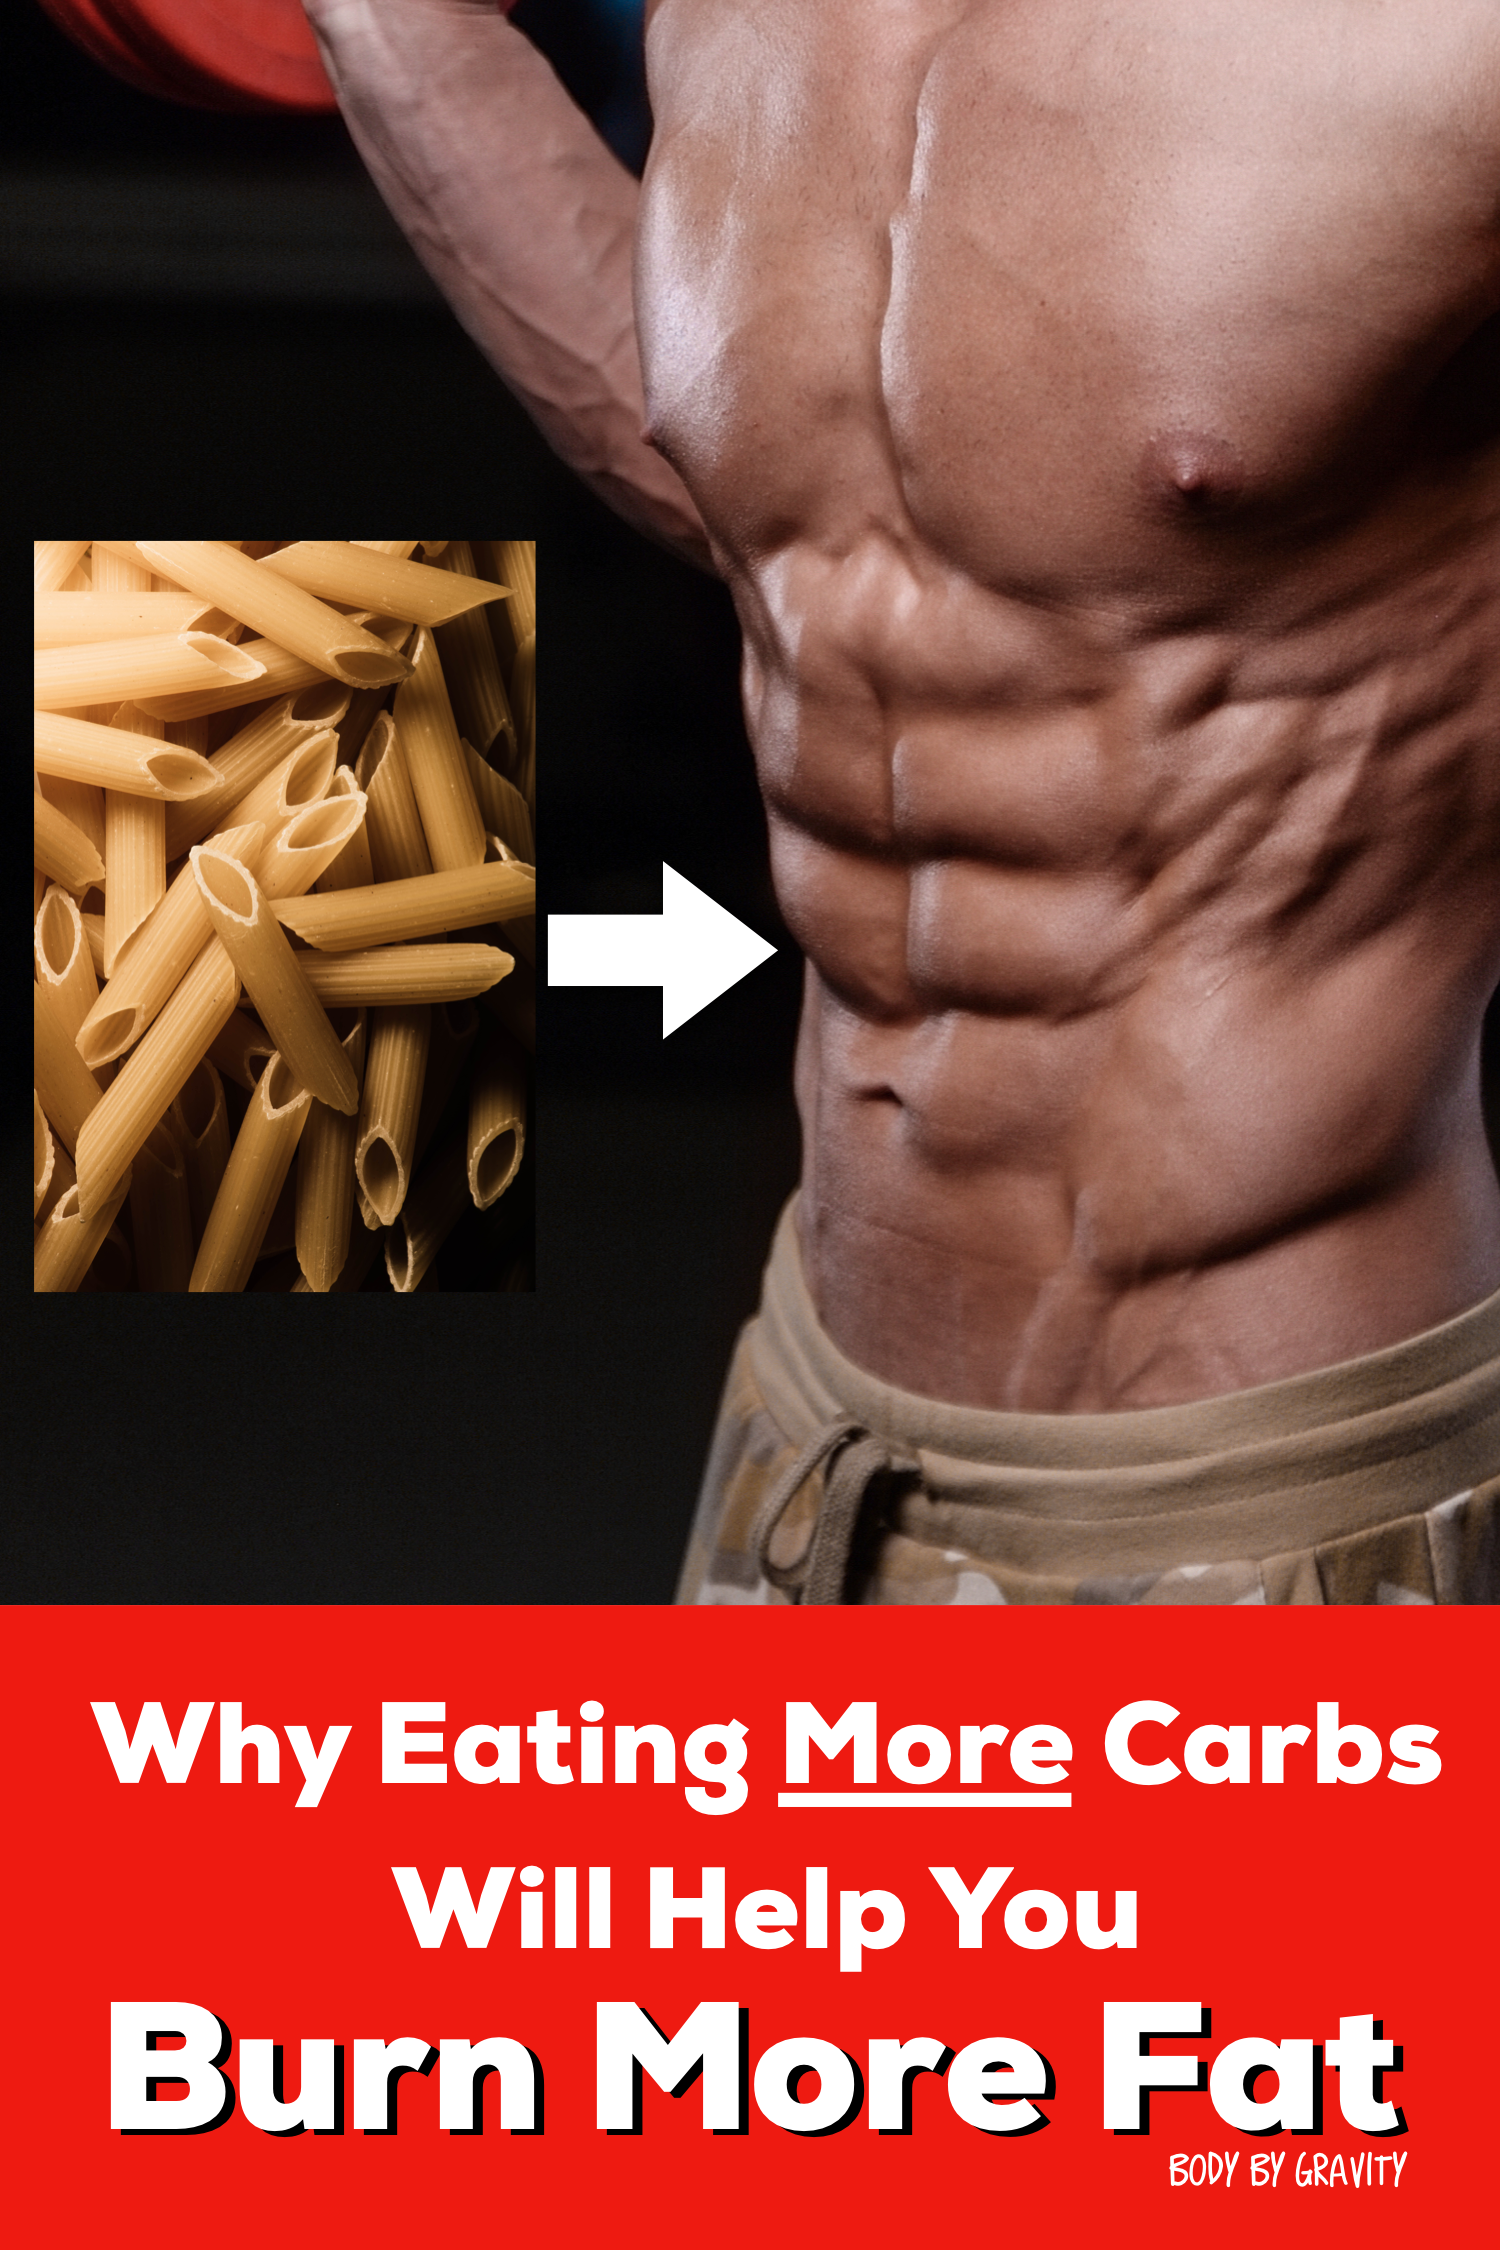 Why Eating More Carbs Will Help You Burn More Fat